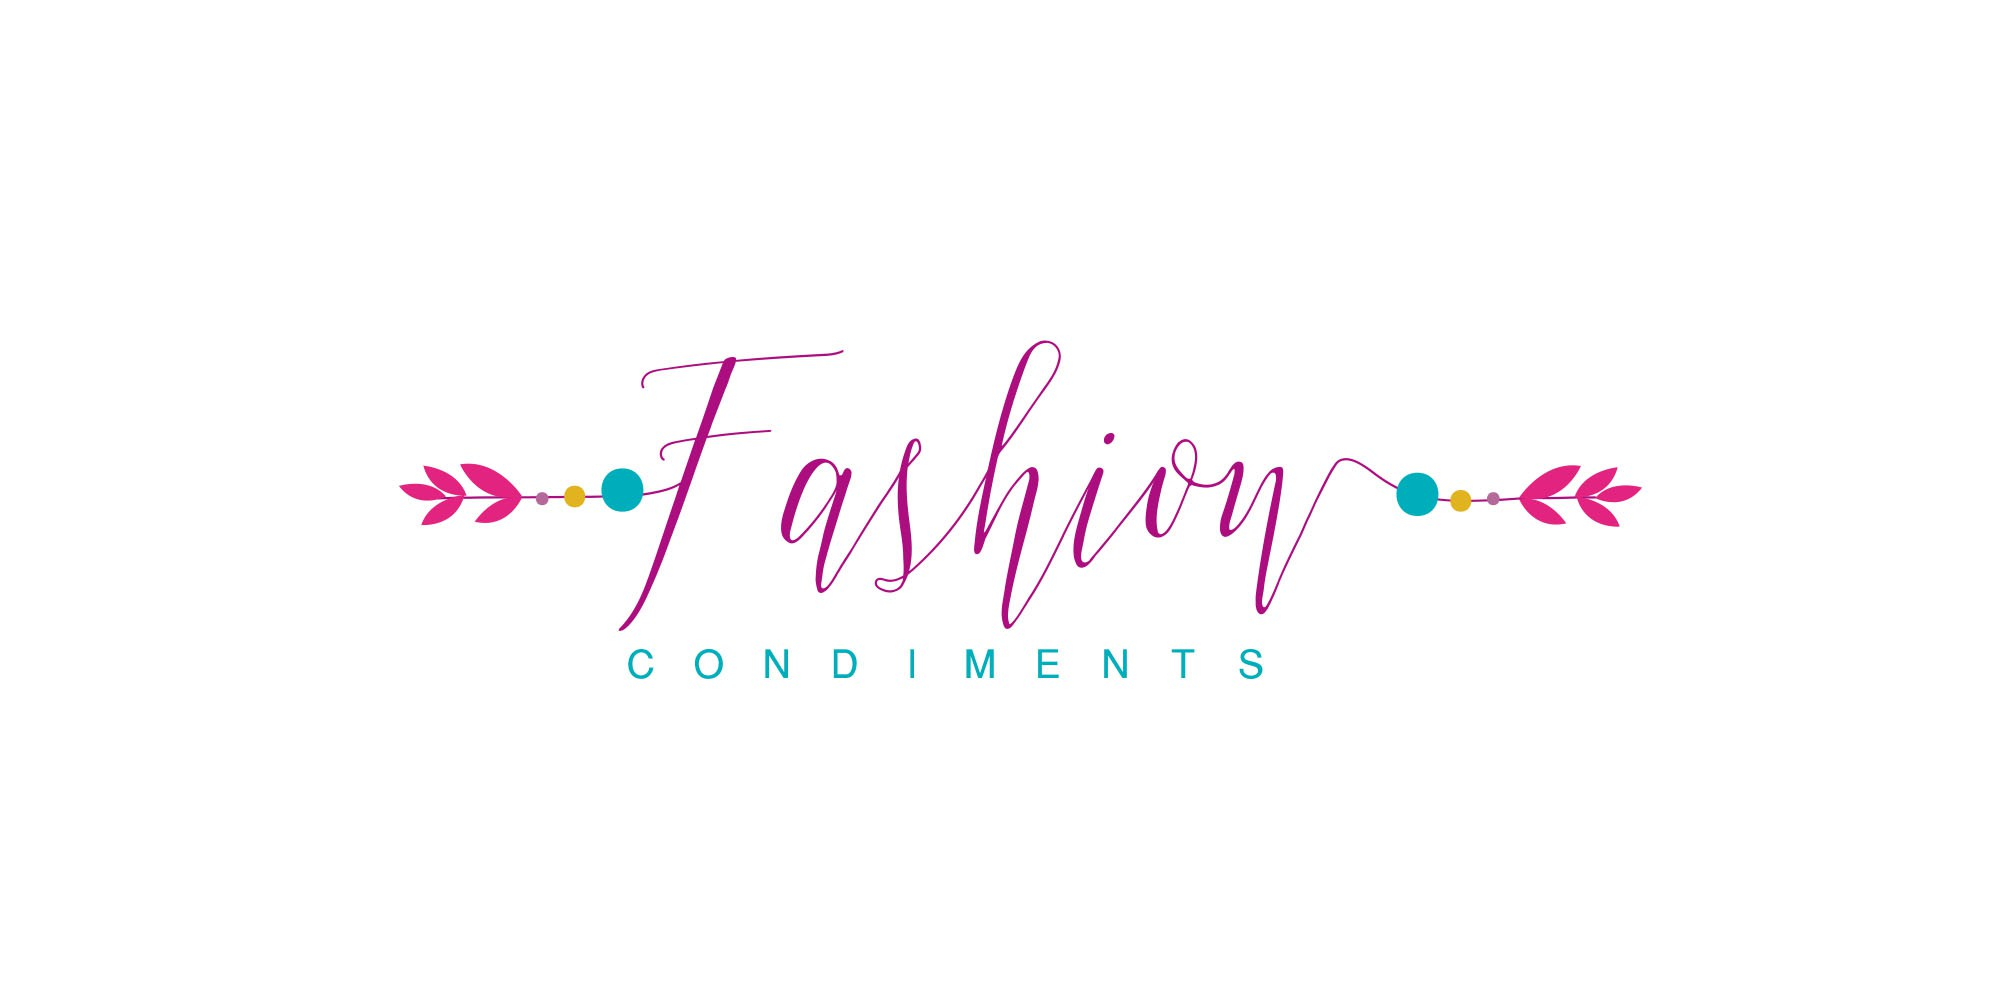 Brand new accessories fashion business looking for a beautiful, hippie chic and cool logo